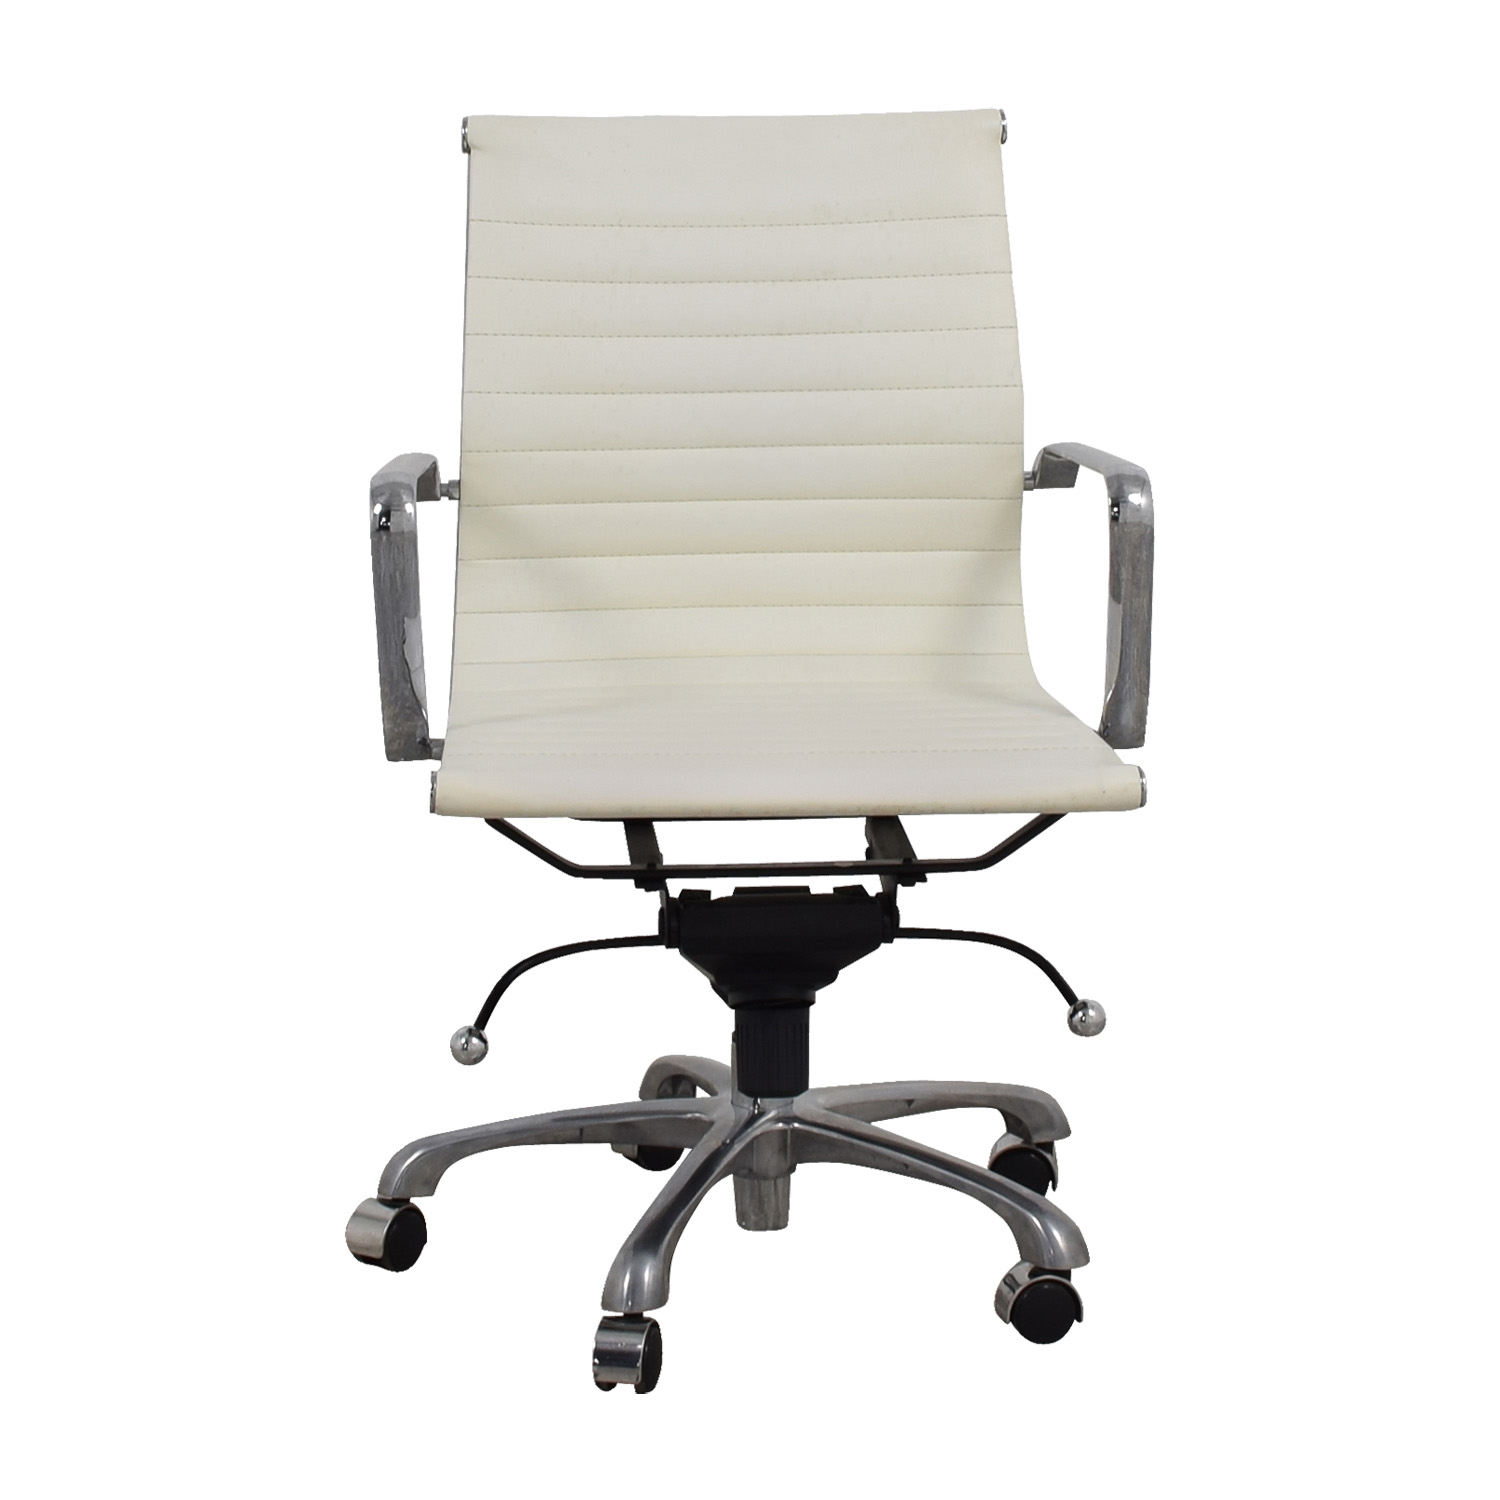 Buy White And Chrome Office Chair ...